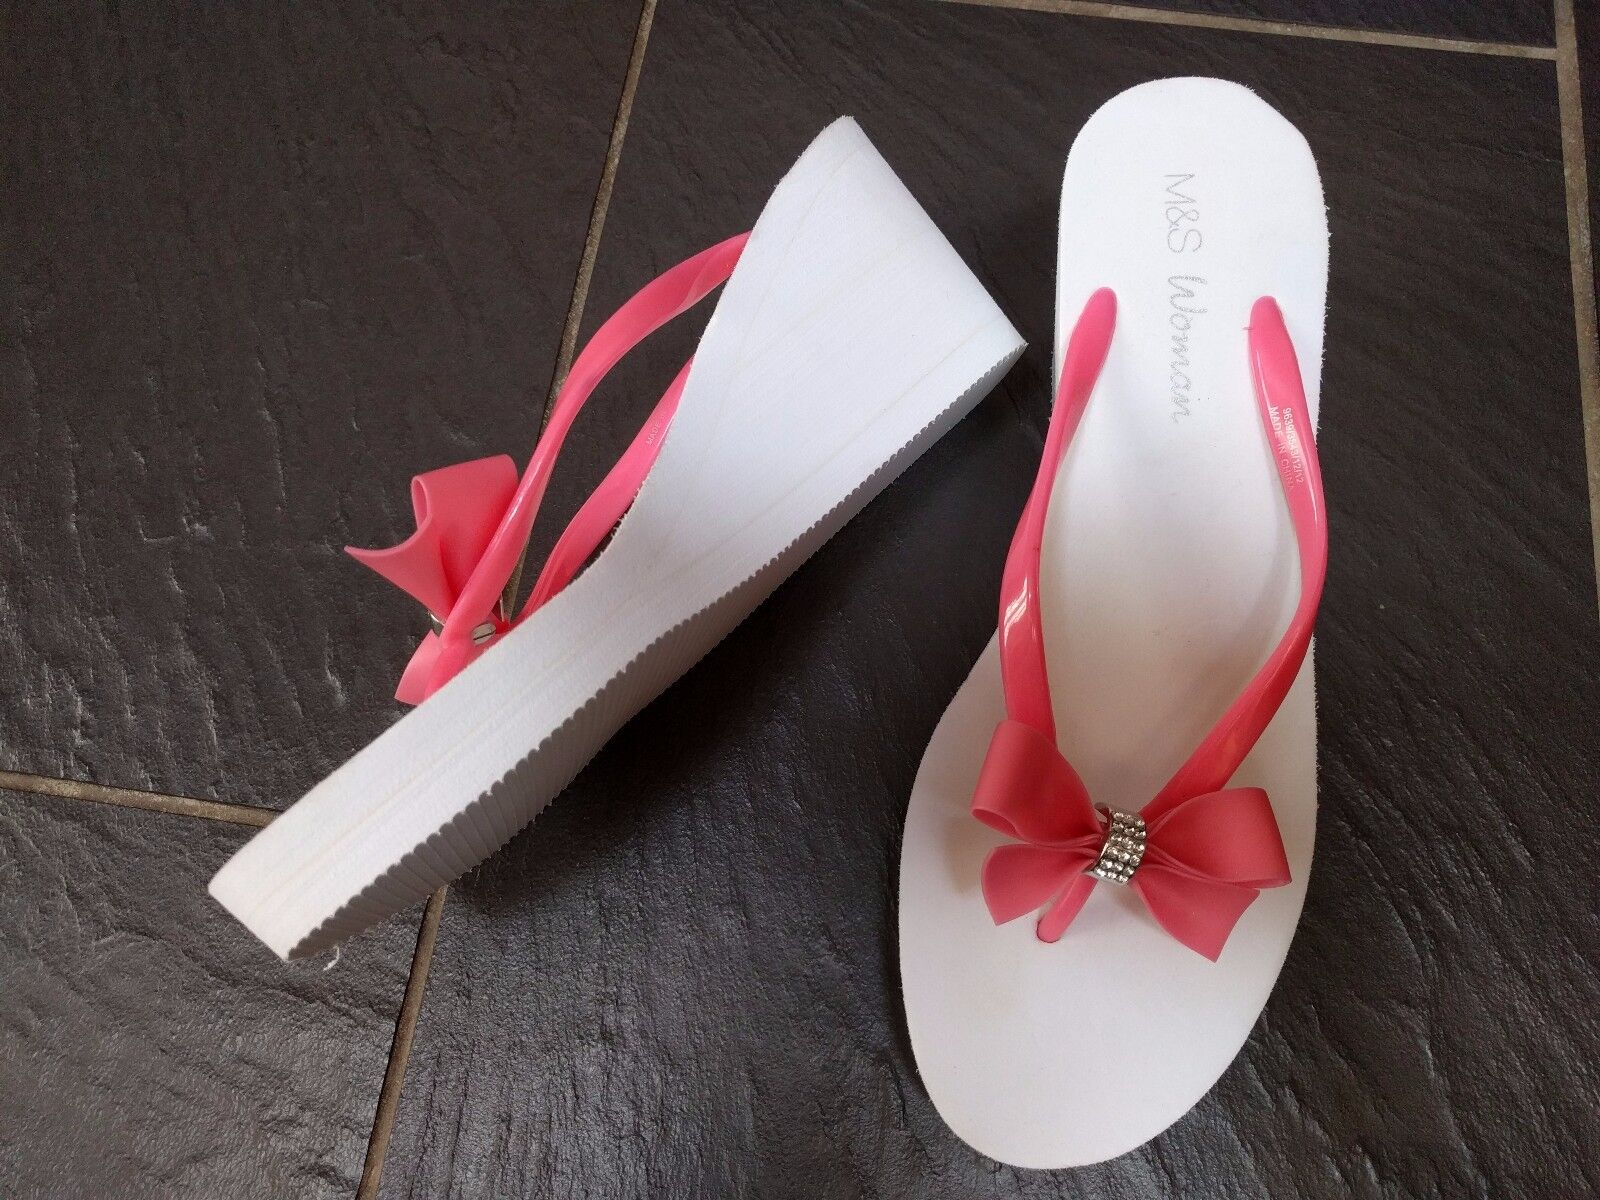 M&S PINK DIAMANTE WHITE SIZE WEDGE SANDALS FLIP FLOPS SIZE WHITE 7-8 bf74f2